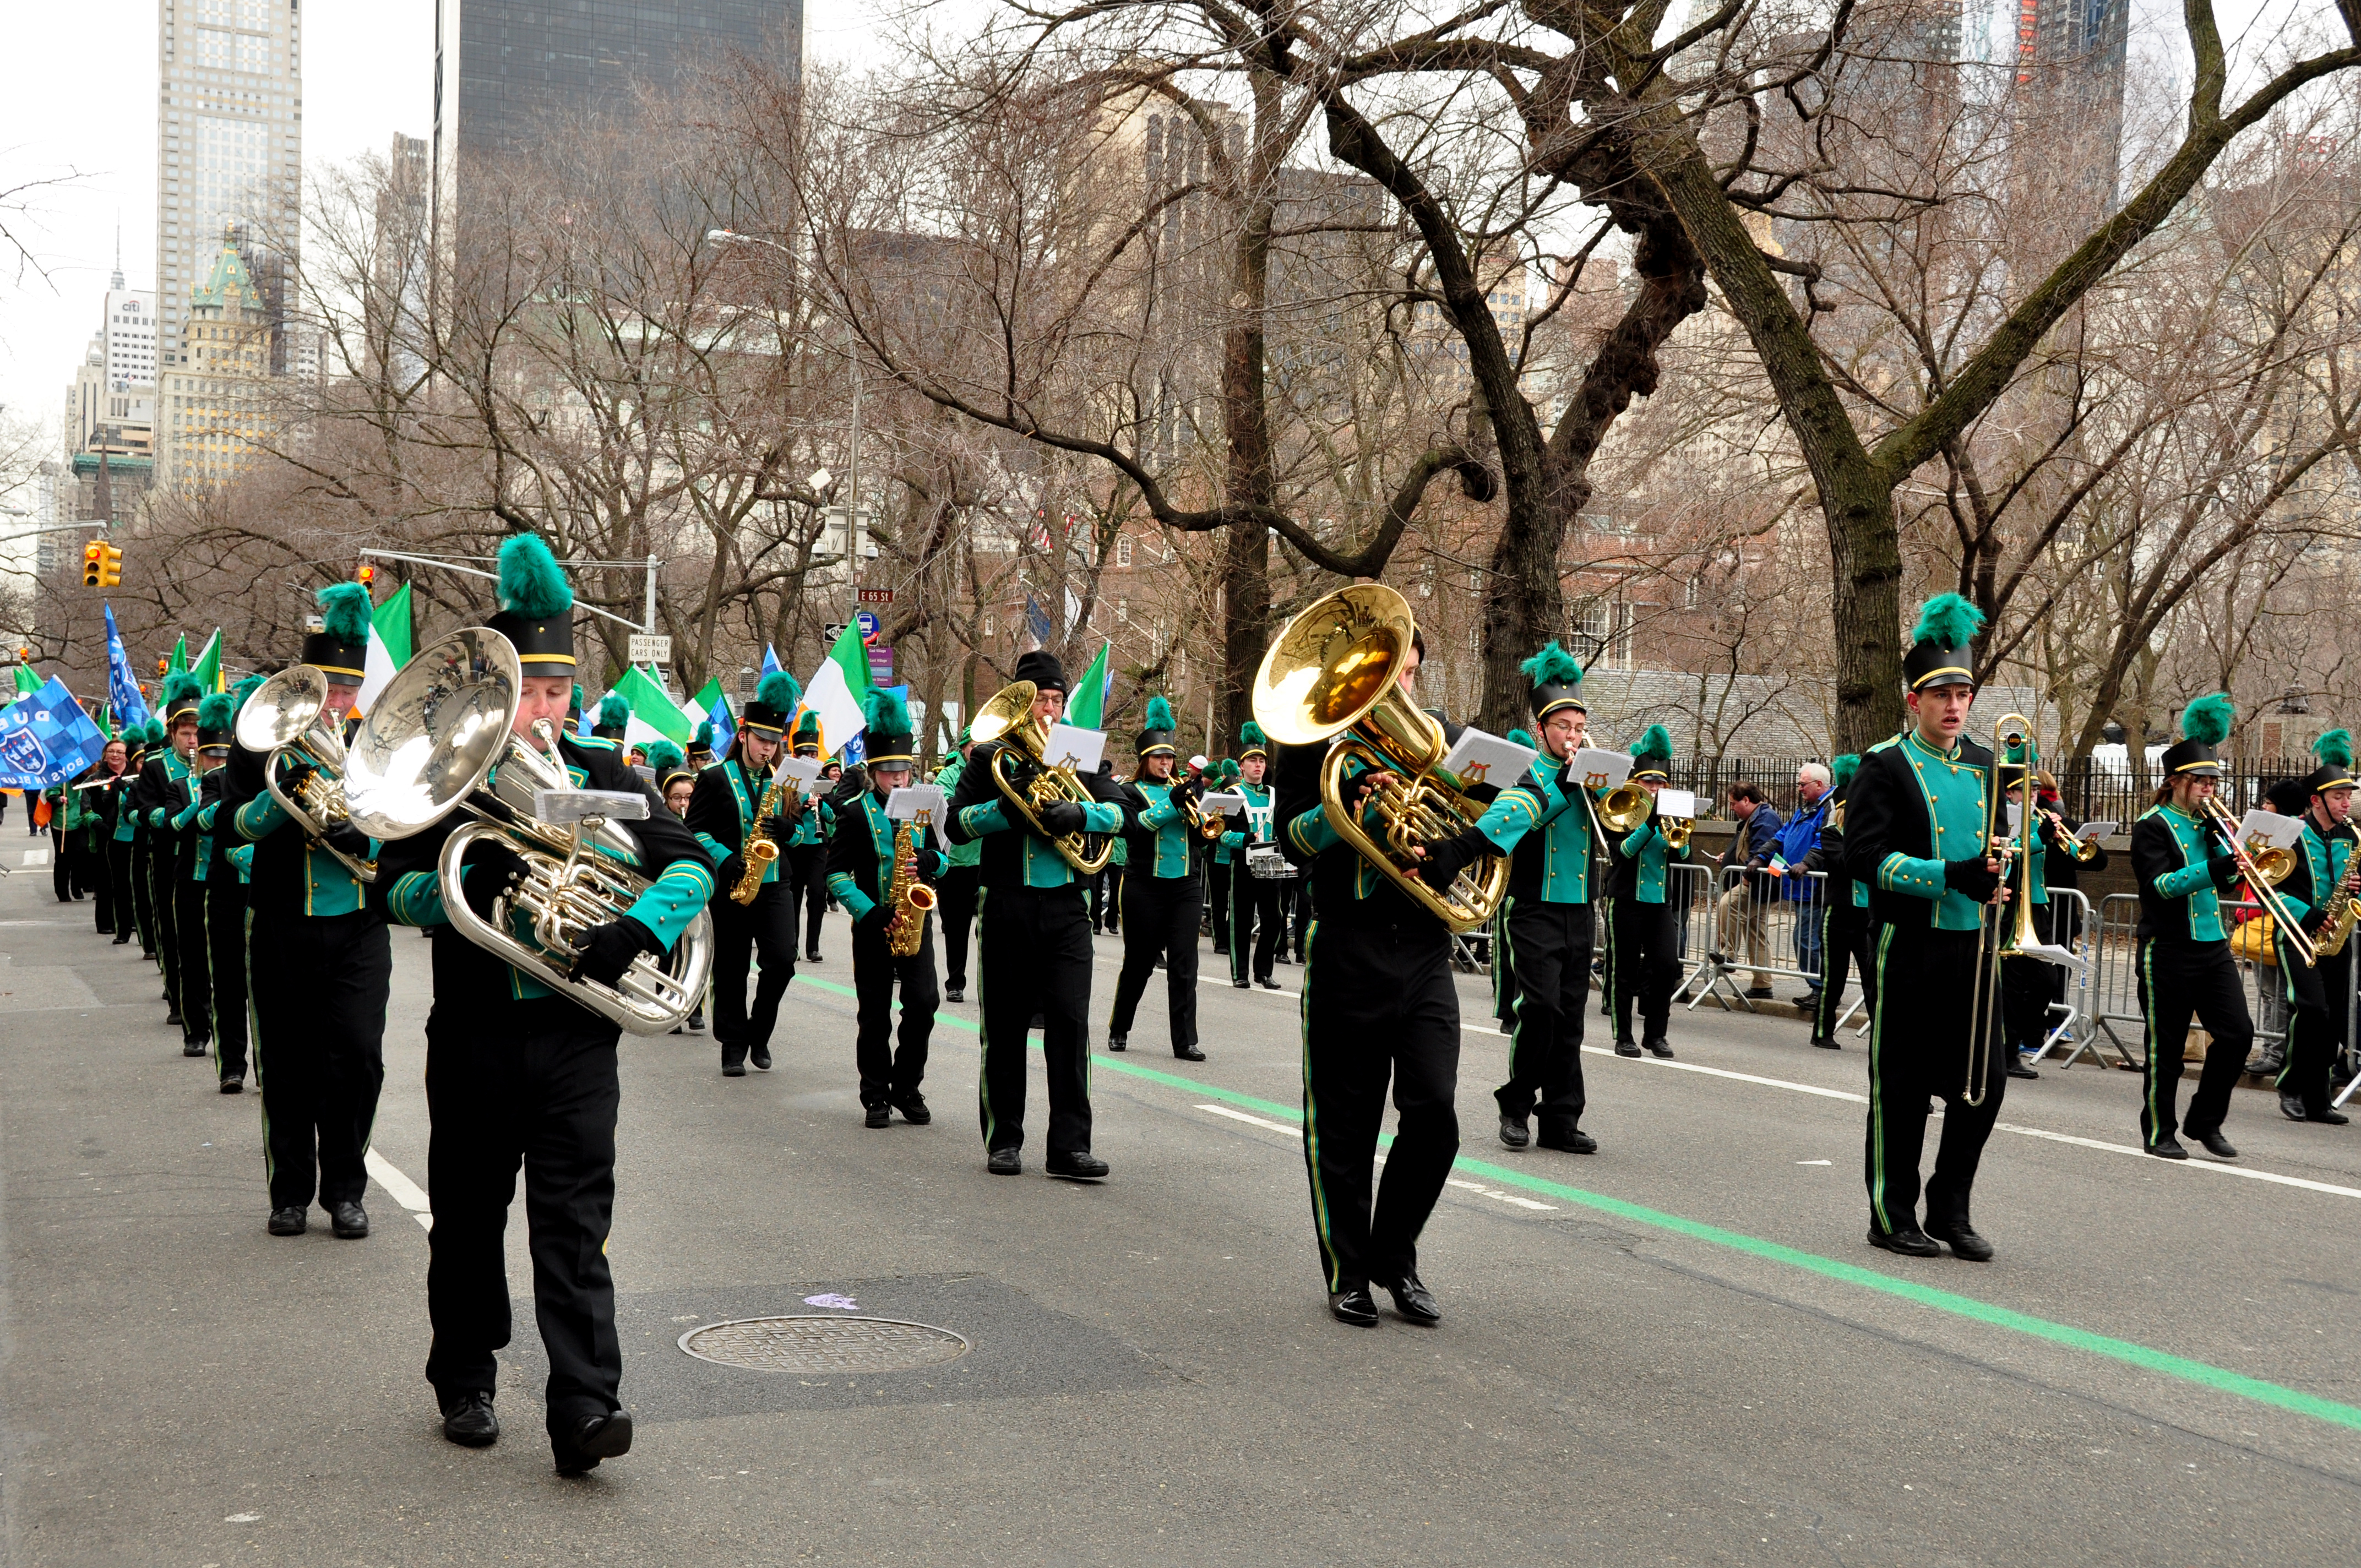 St. Patrick's Day in New York